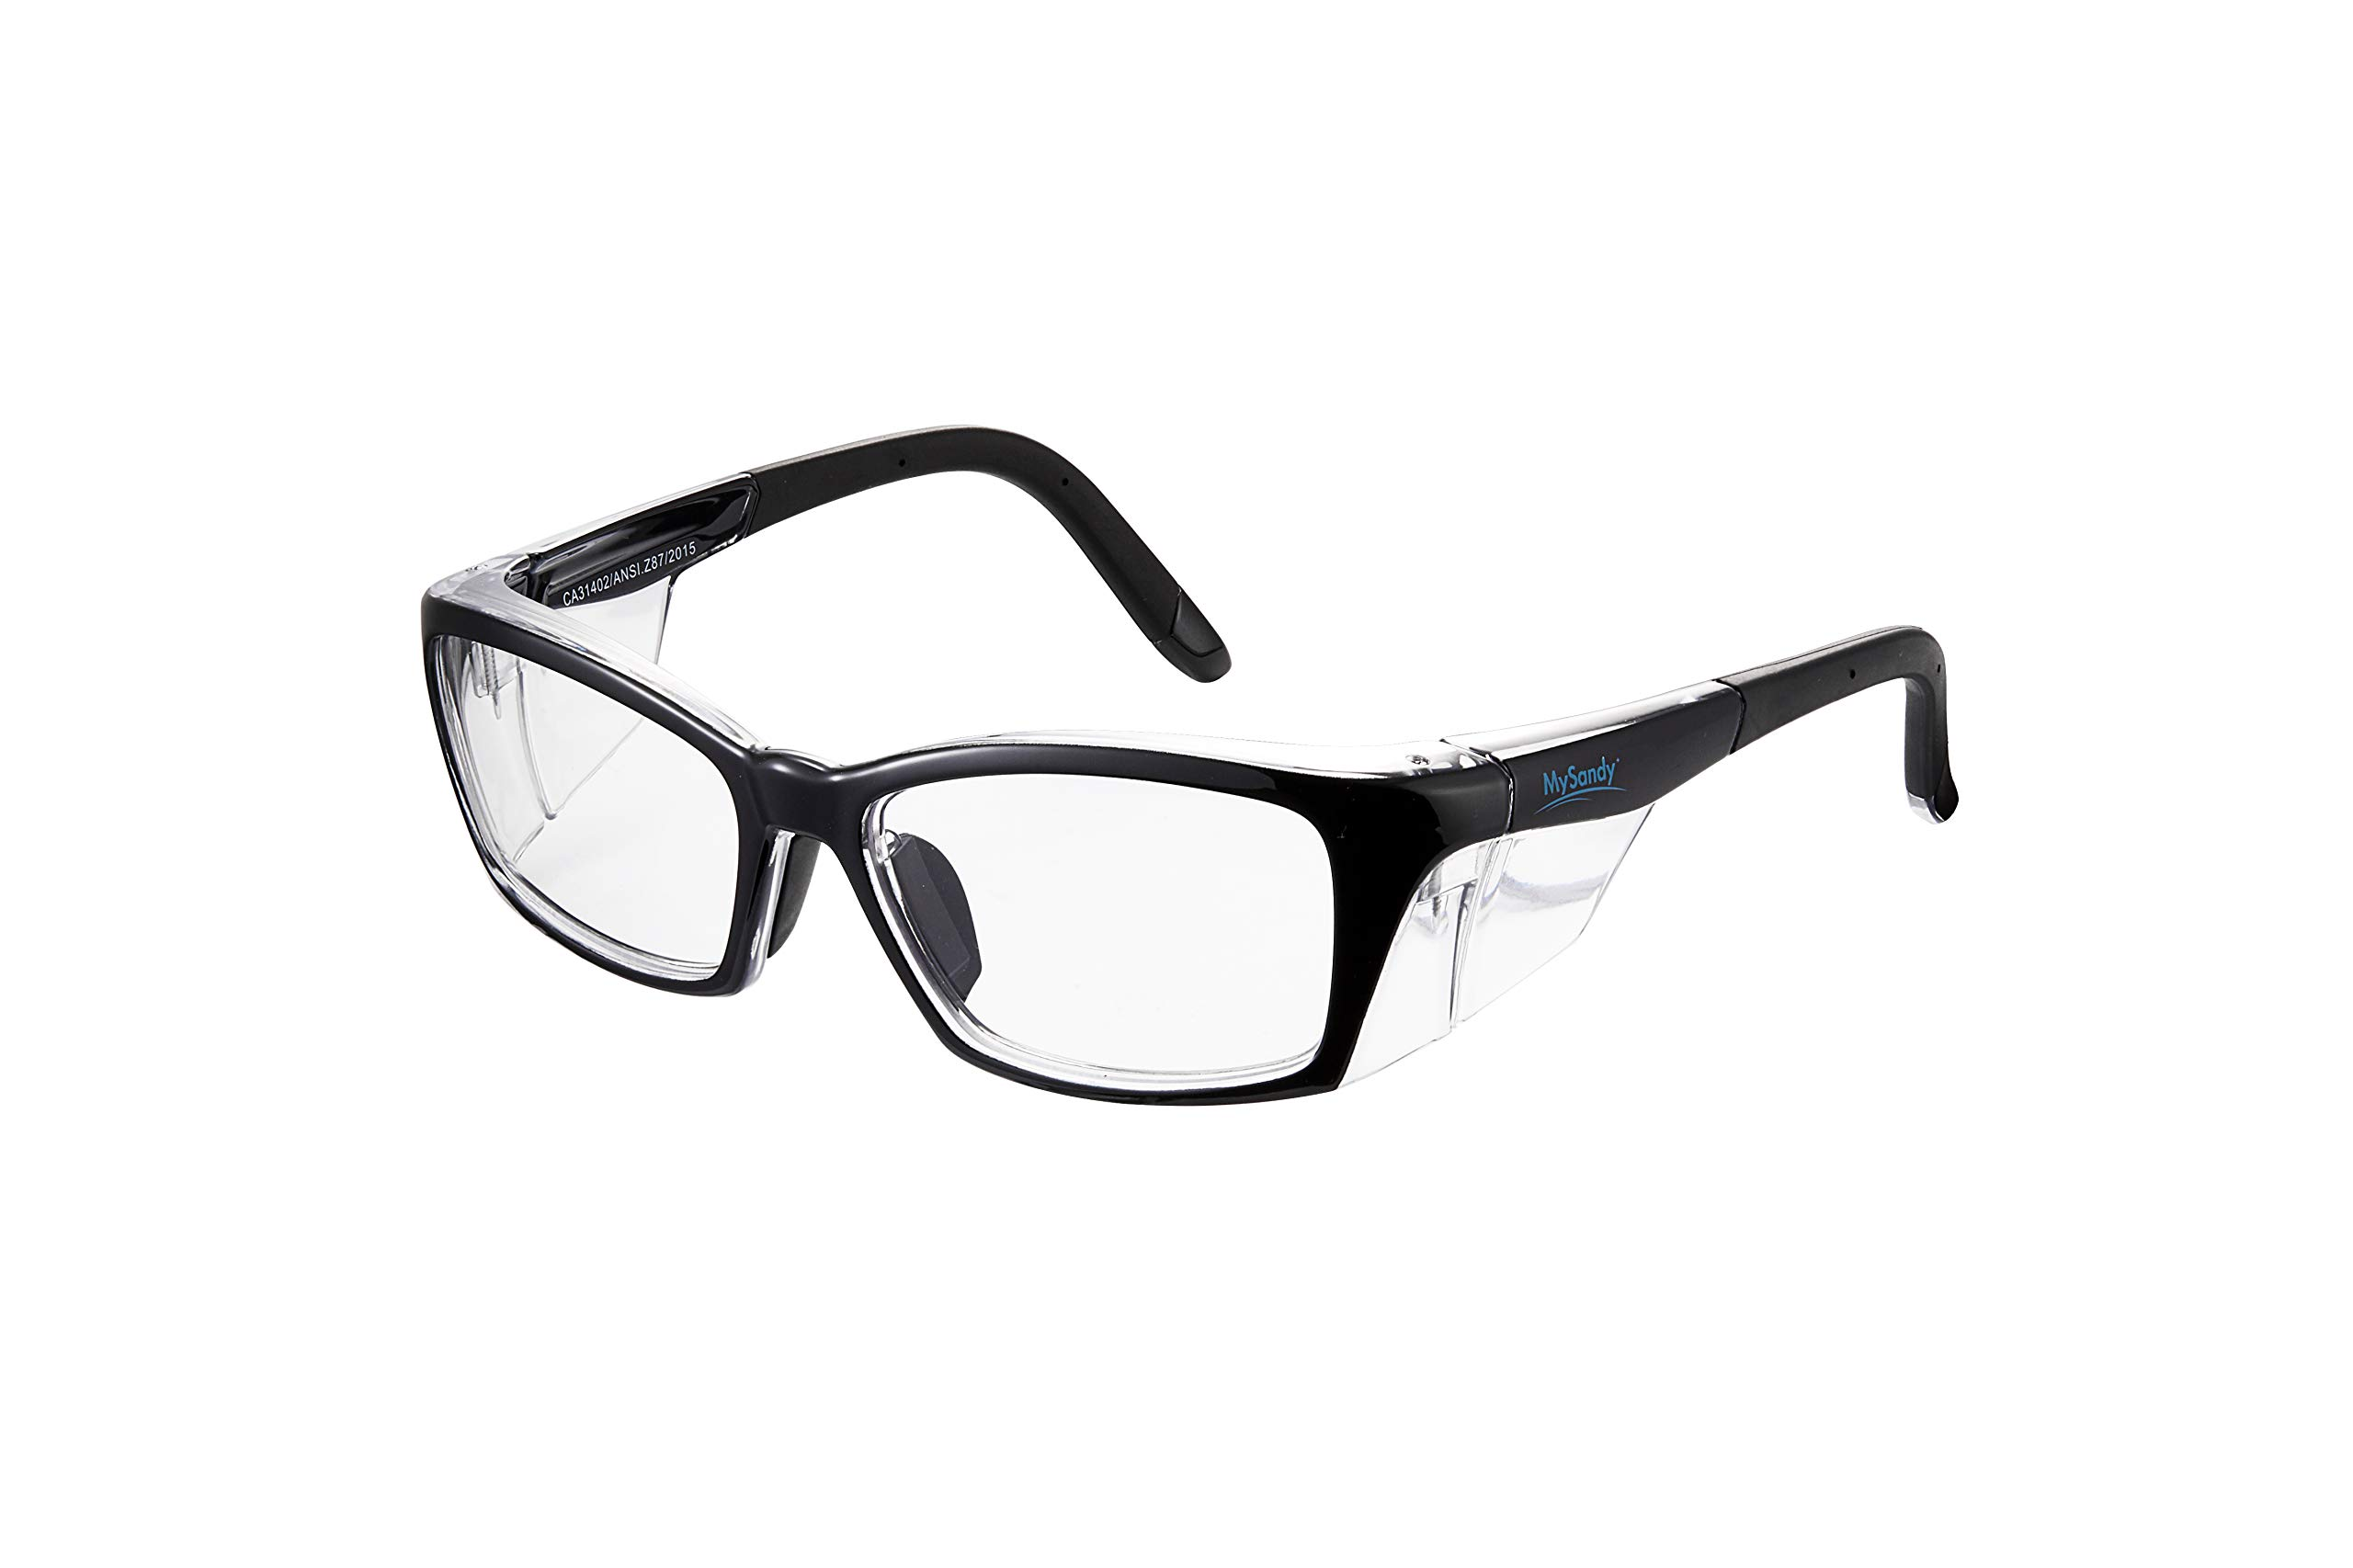 Safety Glasses Reduce Eye Strain & Fatigue, UV Protection, Anti Fog Coating Clear Blue Light Blocking Lens (OP40-Black)